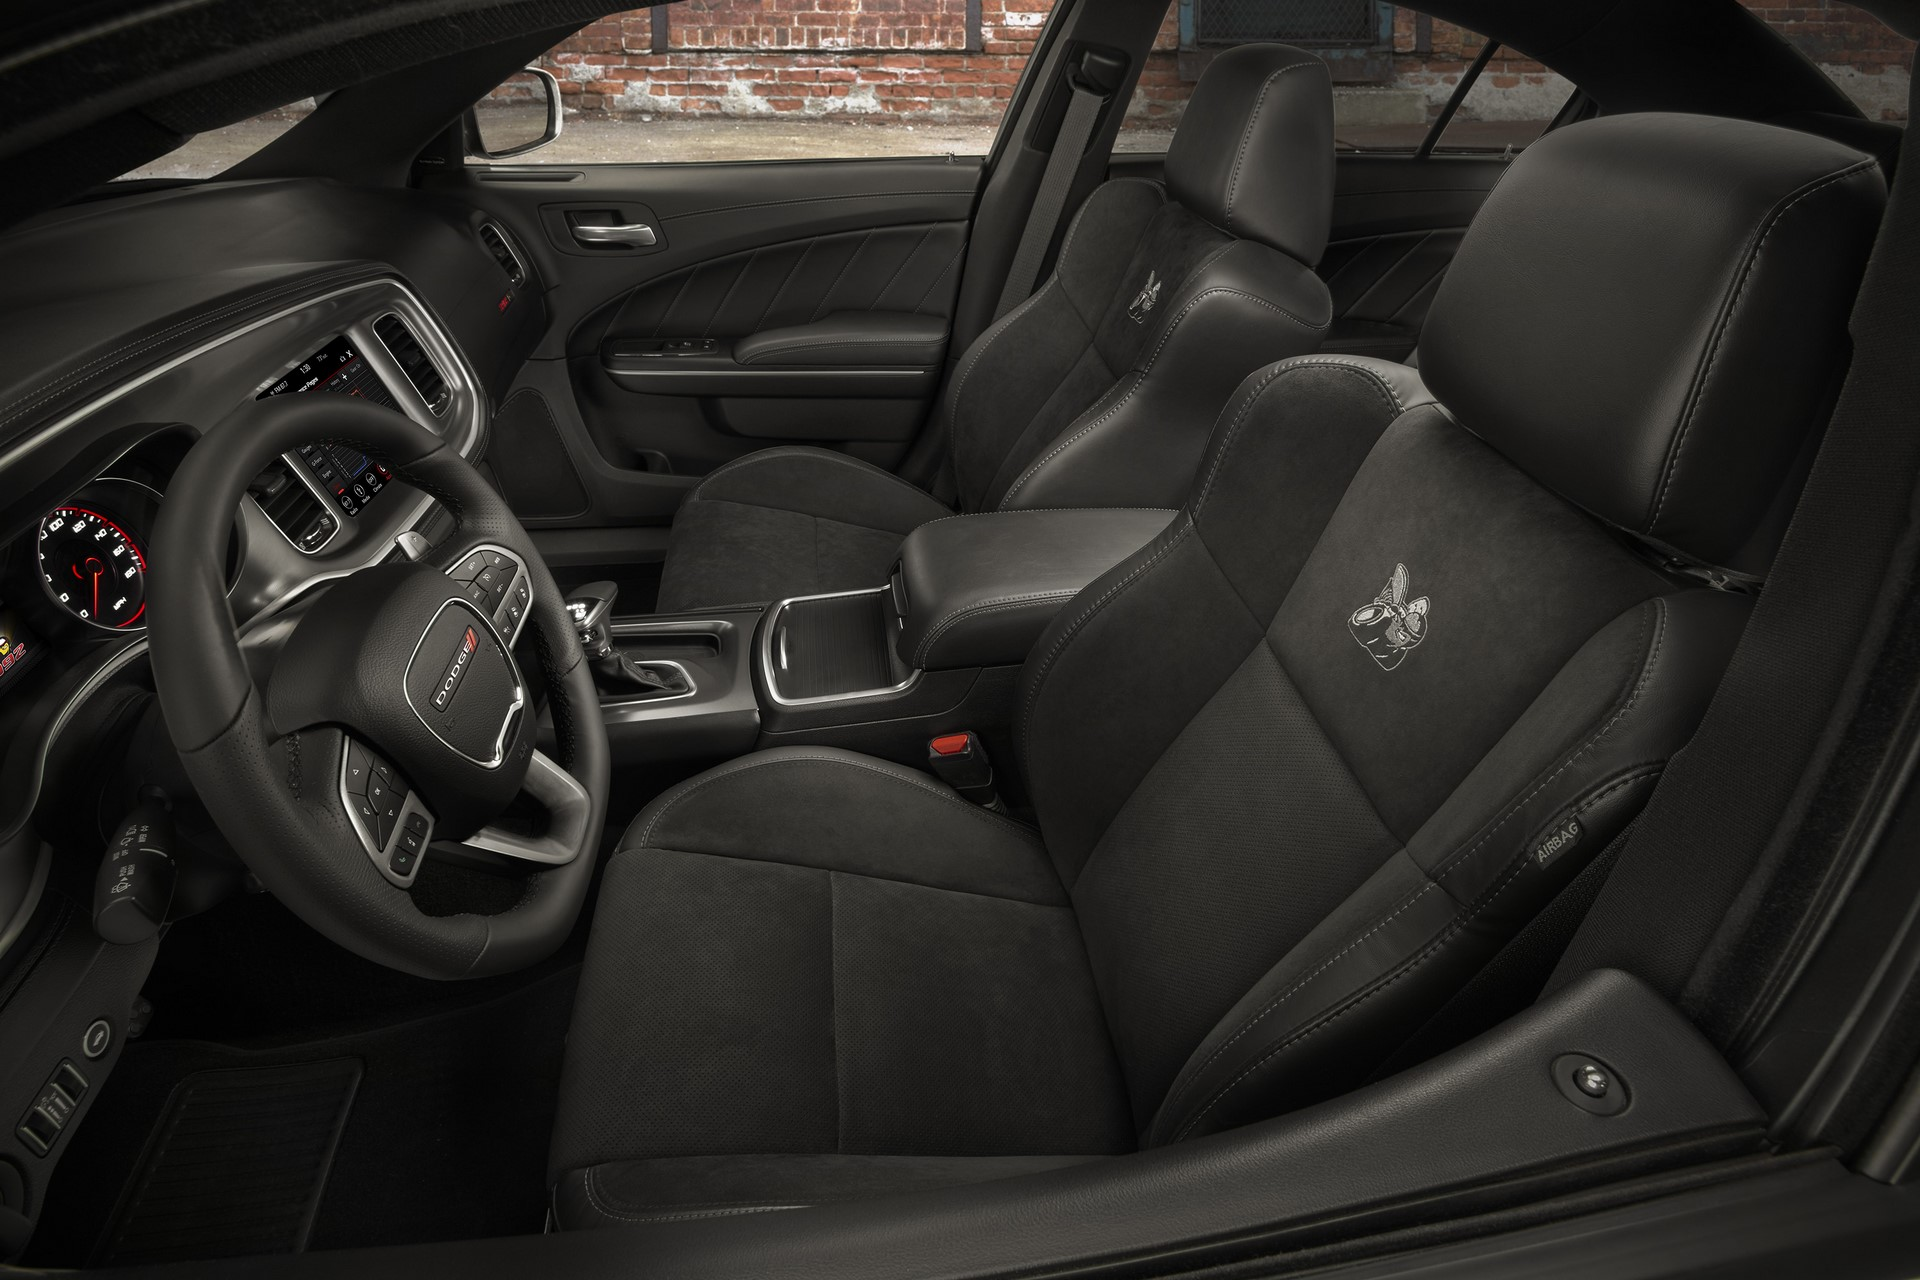 The 2020 Dodge Charger Scat Pack Widebody features an available new leather flat-bottom steering wheel.  Standard cloth performance seats feature an embroidered Scat Pack Bee logo.